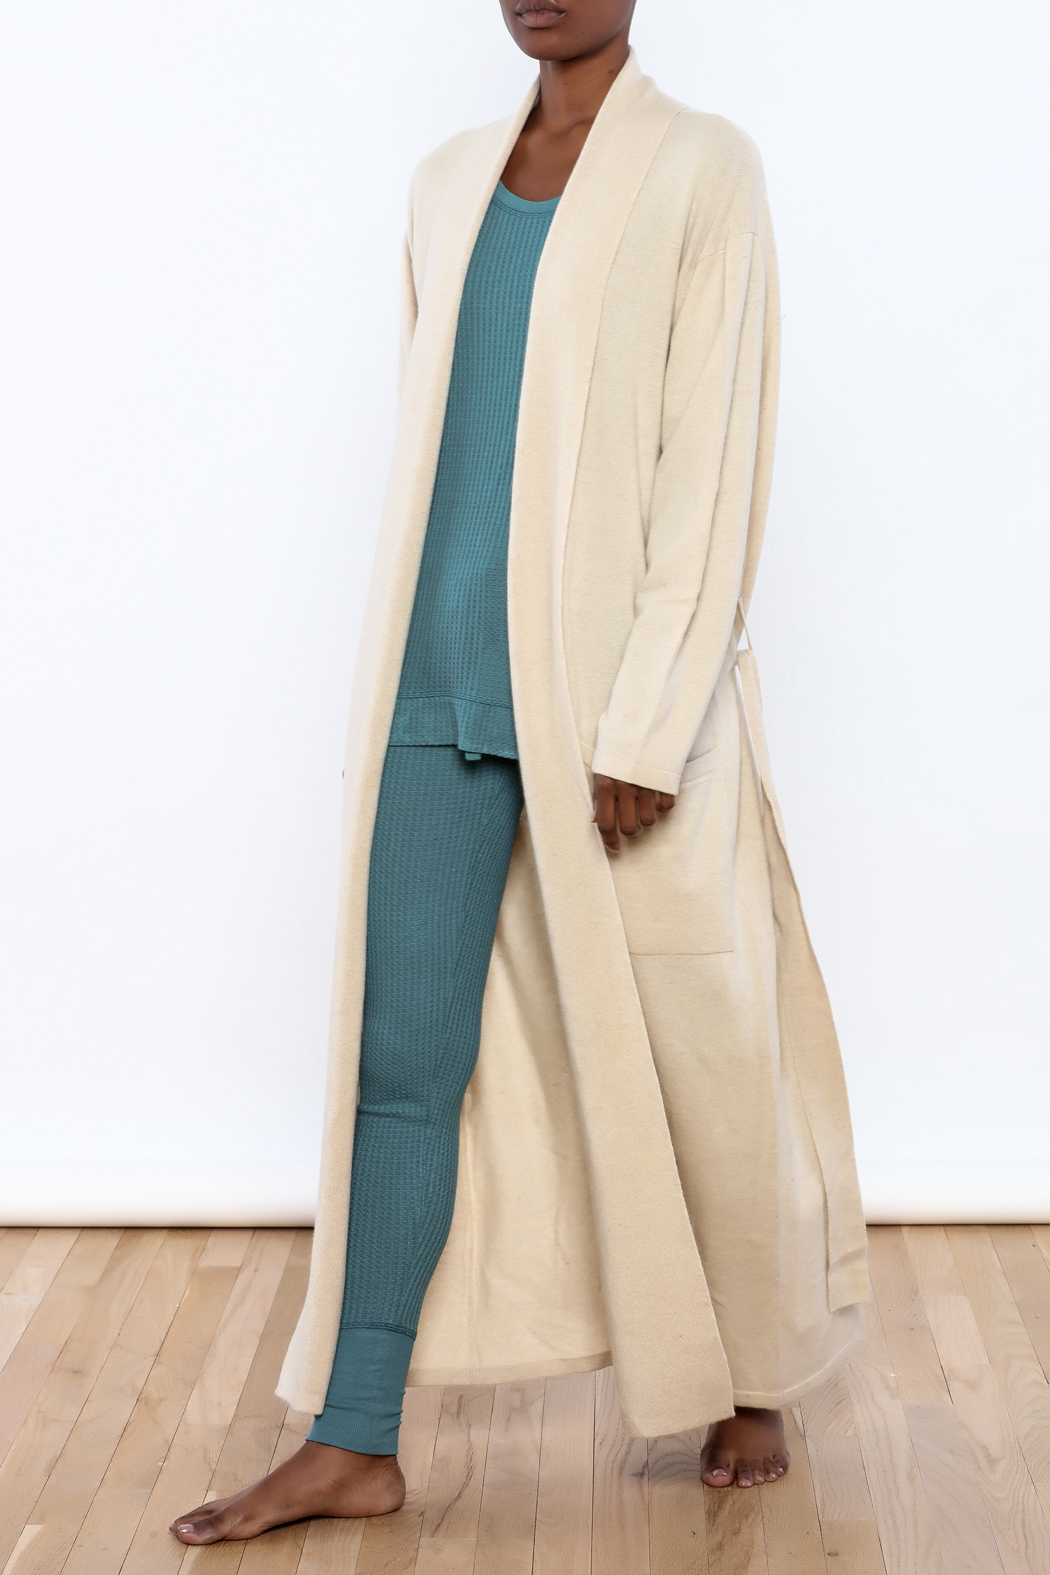 Arlotta Cashmere Duster Robe from Idaho by Madeline and Oliver ...